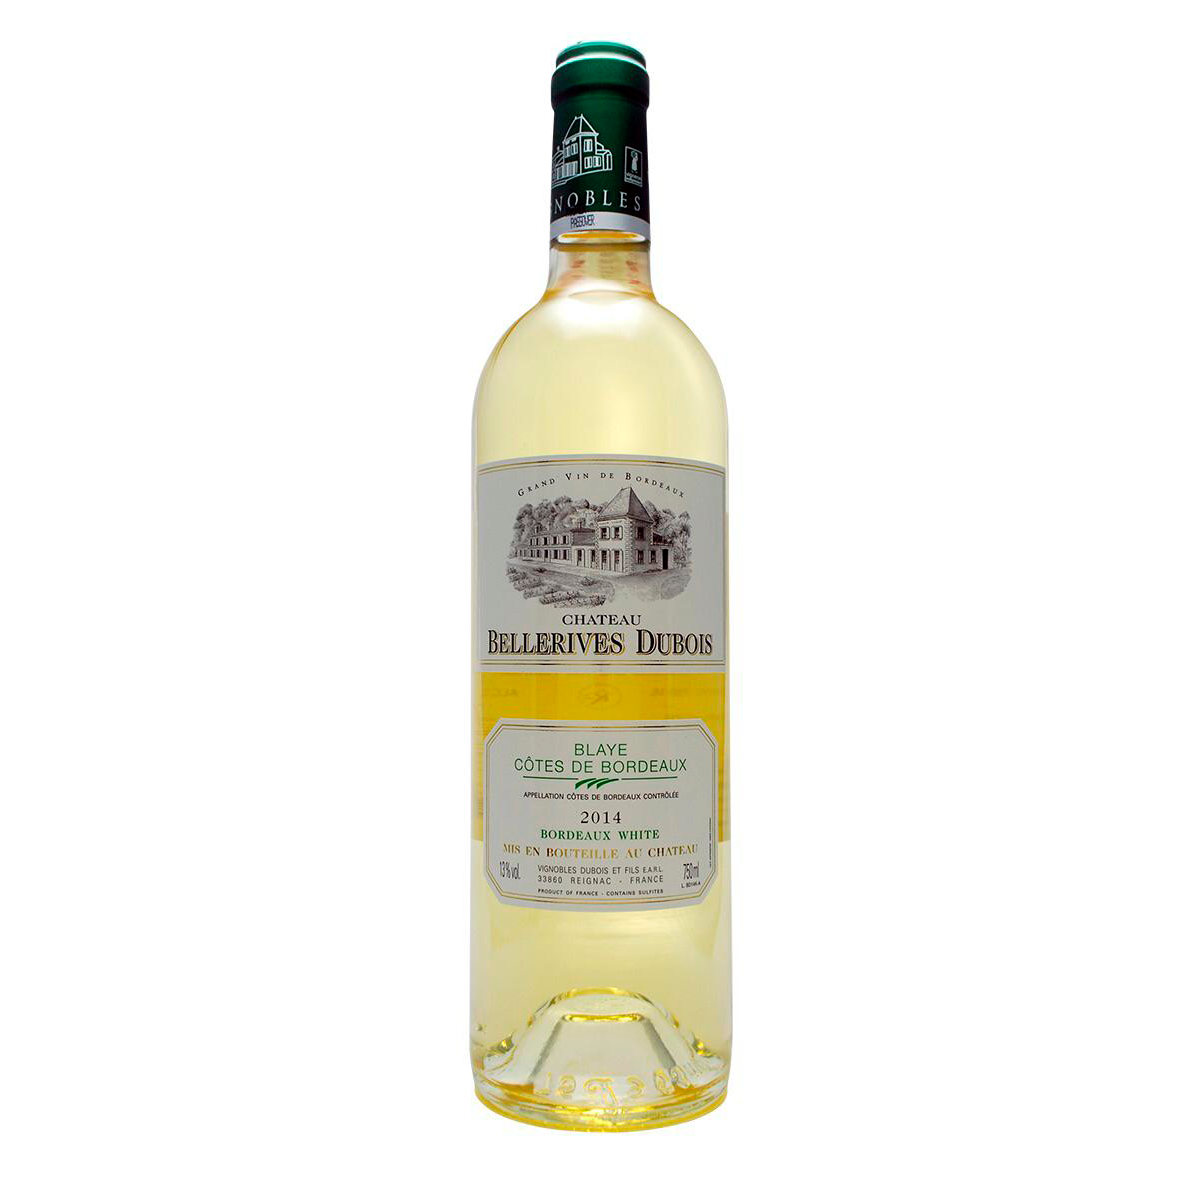 GRAND VIN Chateau Bellerives branco 2016